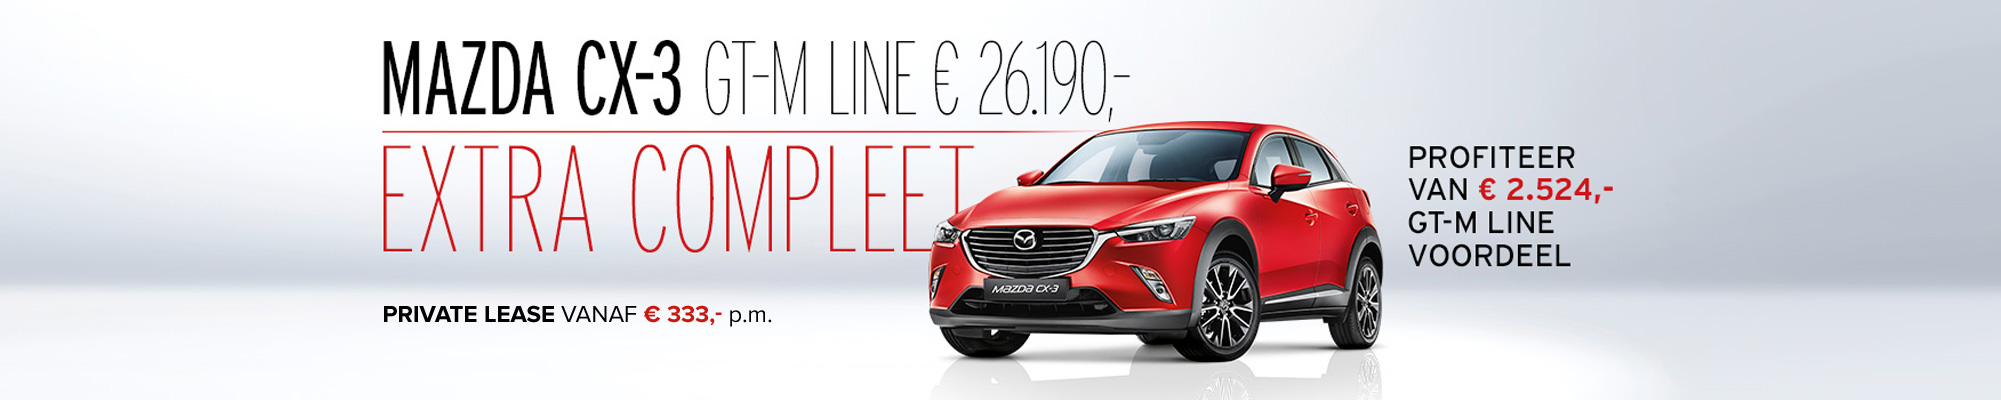 Mazda CX-3 GTM Line - Extra compleet